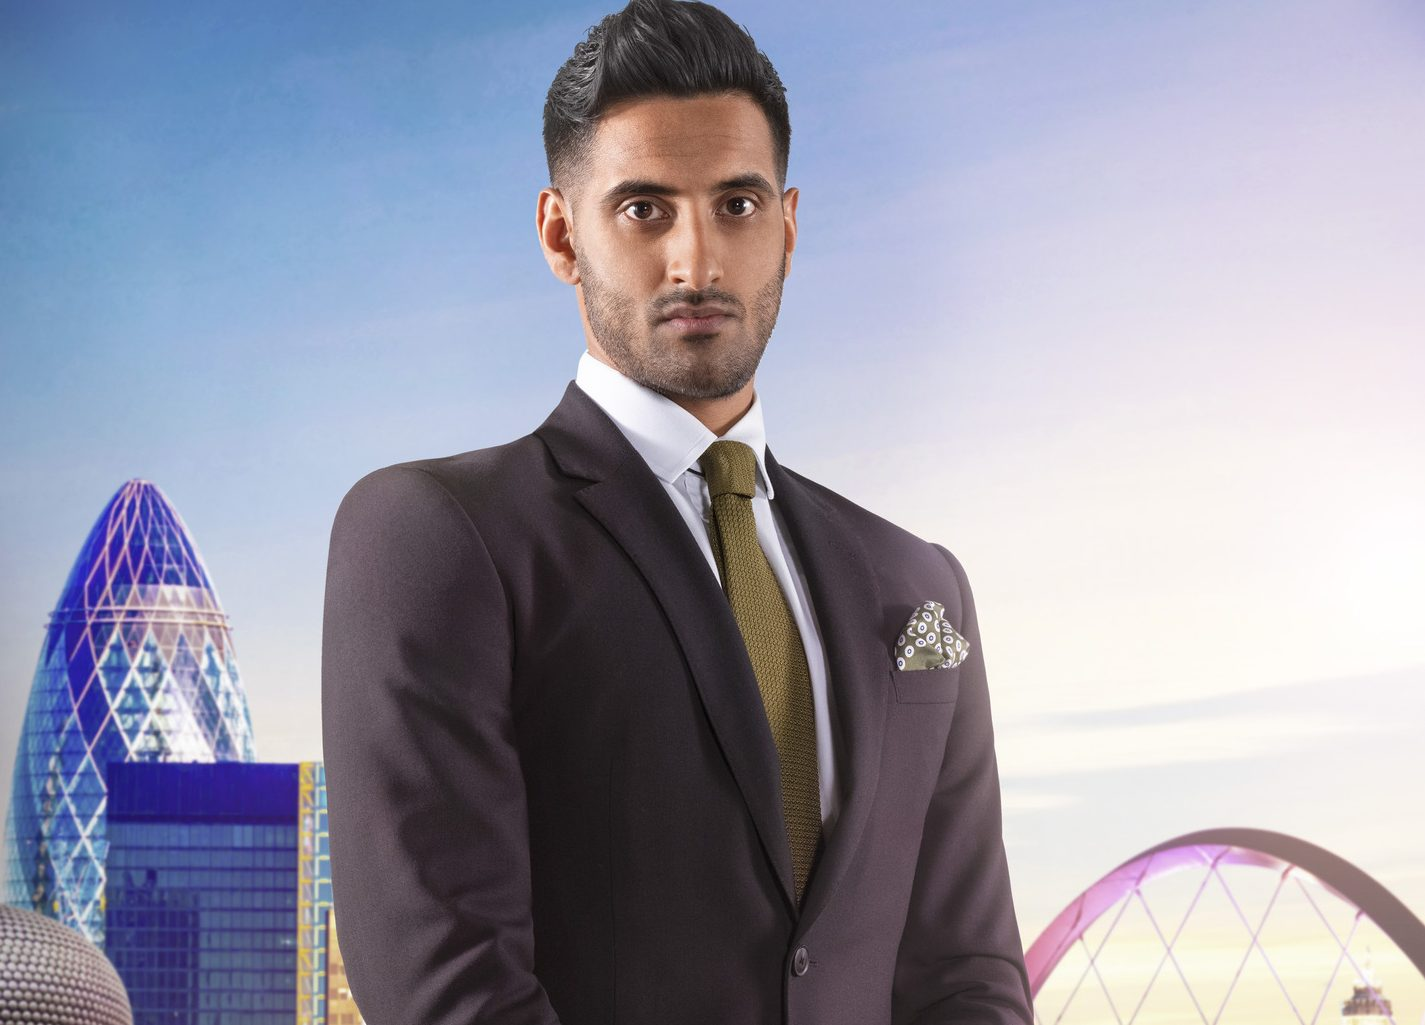 How old is The Apprentice's Daniel Elahi and what is his company called?